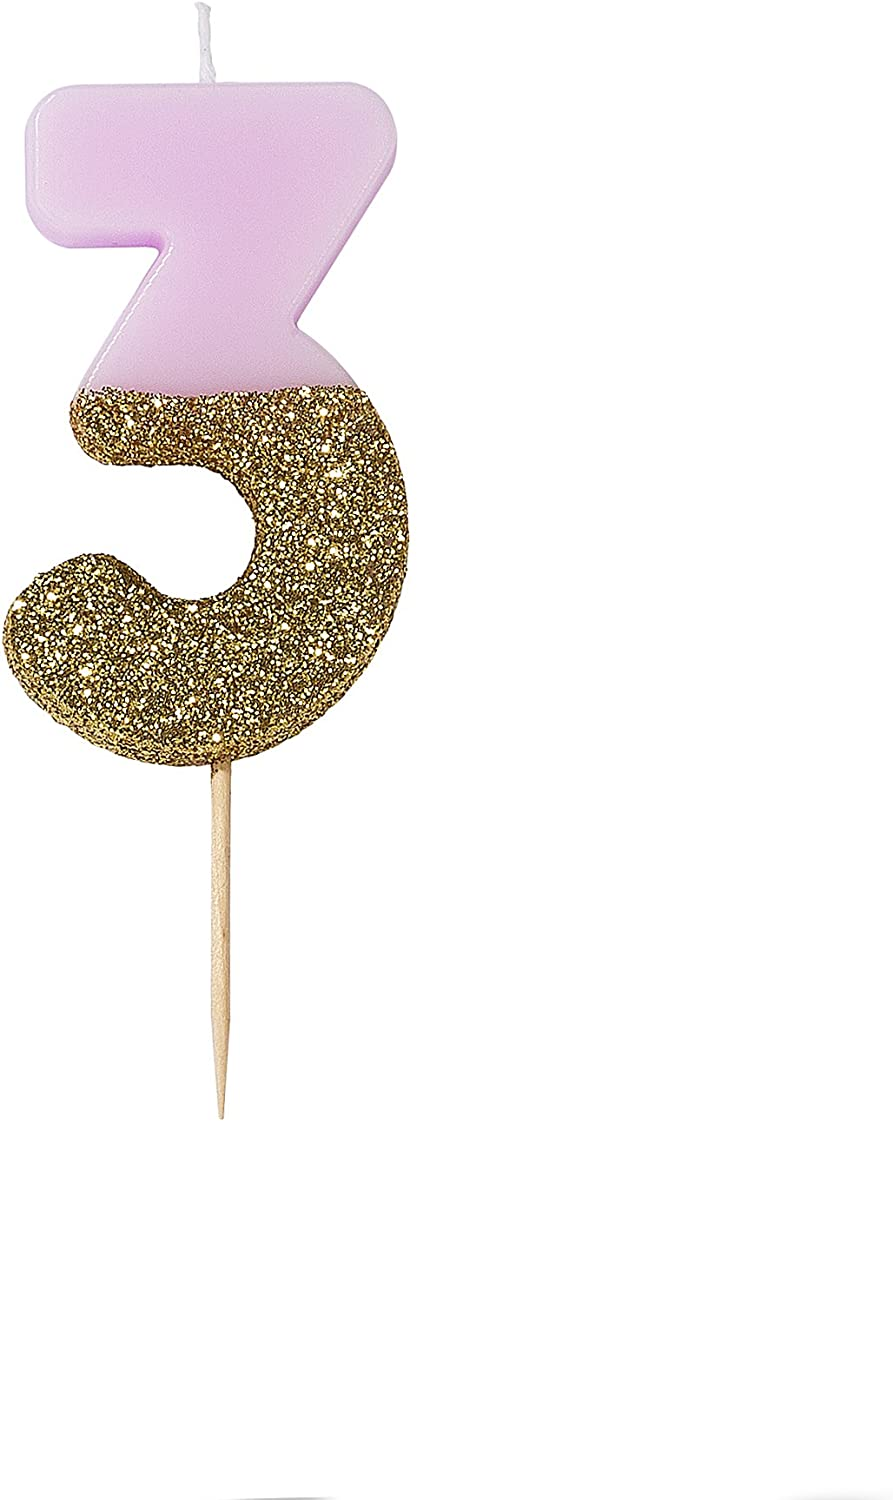 8cm Rose Gold Glitter Number 1 Candle Girls 1st Birthday Party Cake Decoration